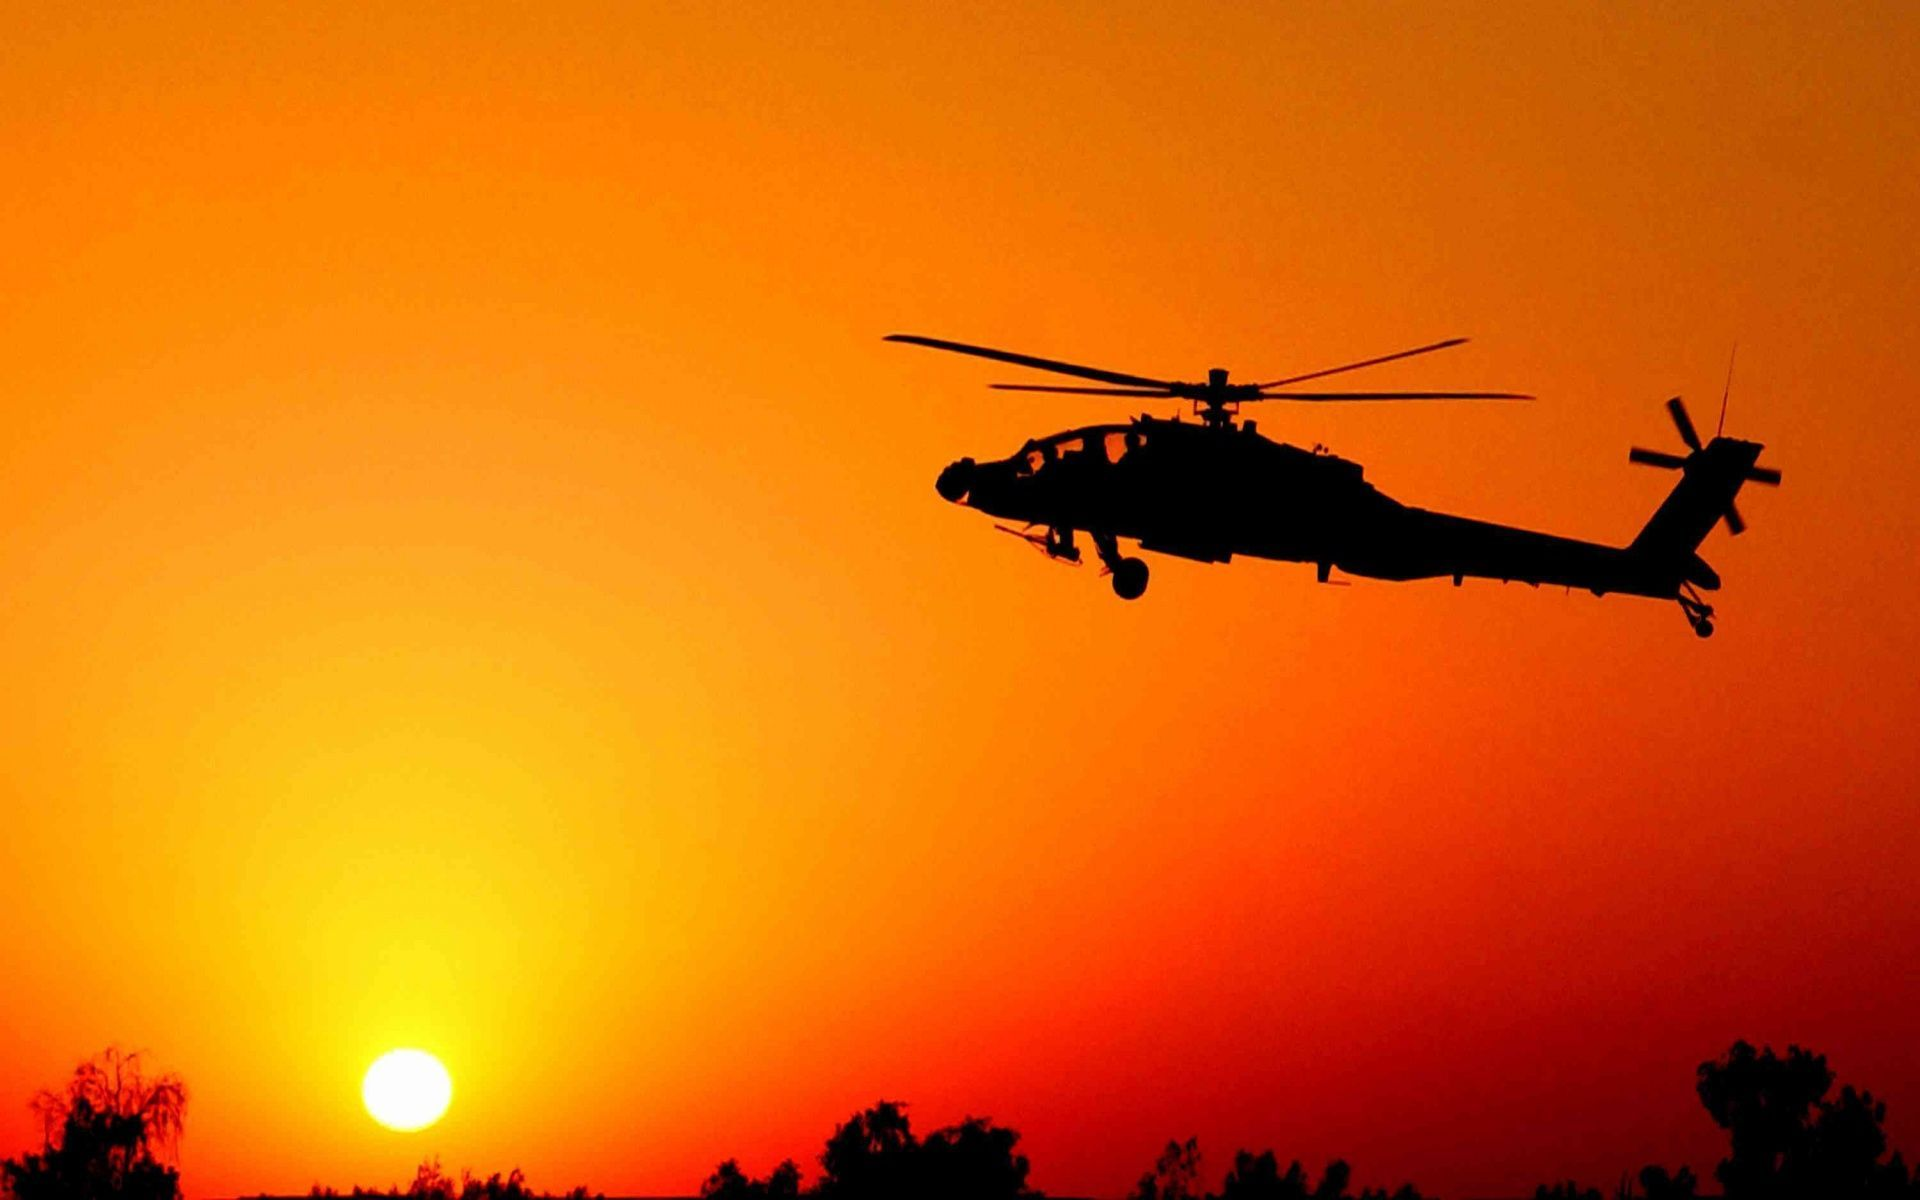 Helicopter HD Wallpapers  Backgrounds  Wallpaper  1920x1200